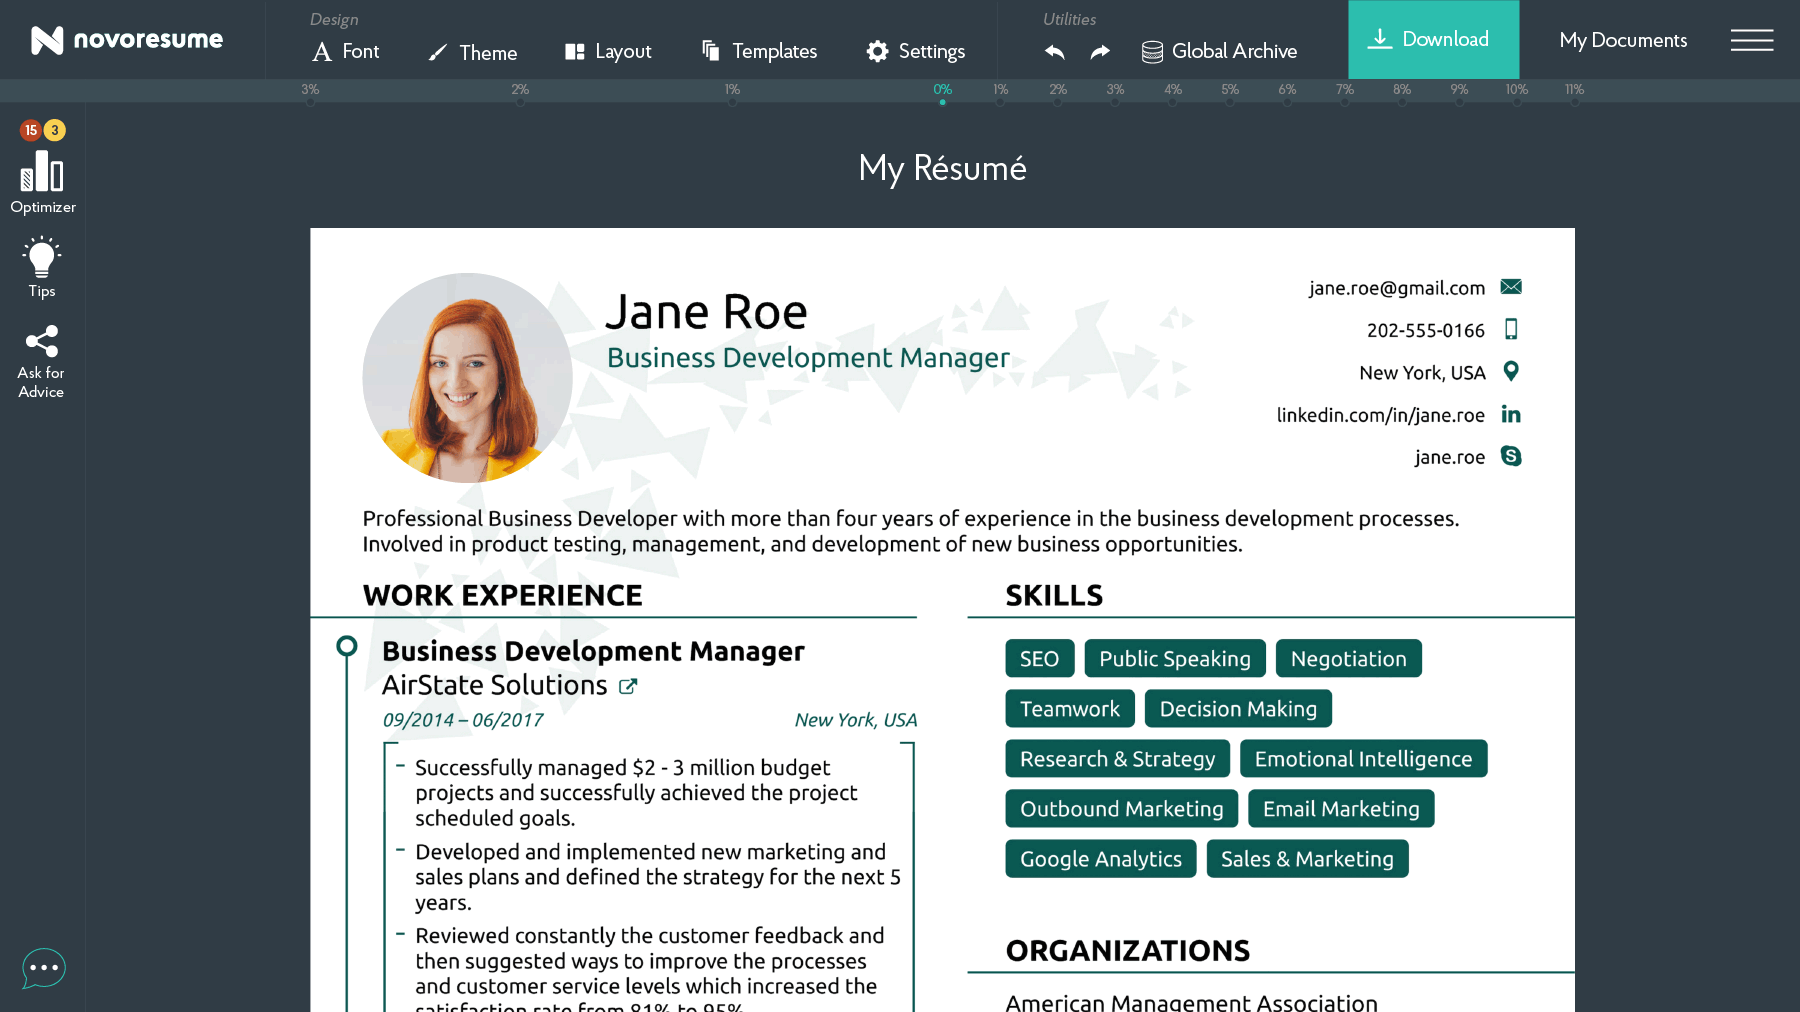 Resume Website Mesmerizing Novorésumé [48] Free Professional Resume Builder